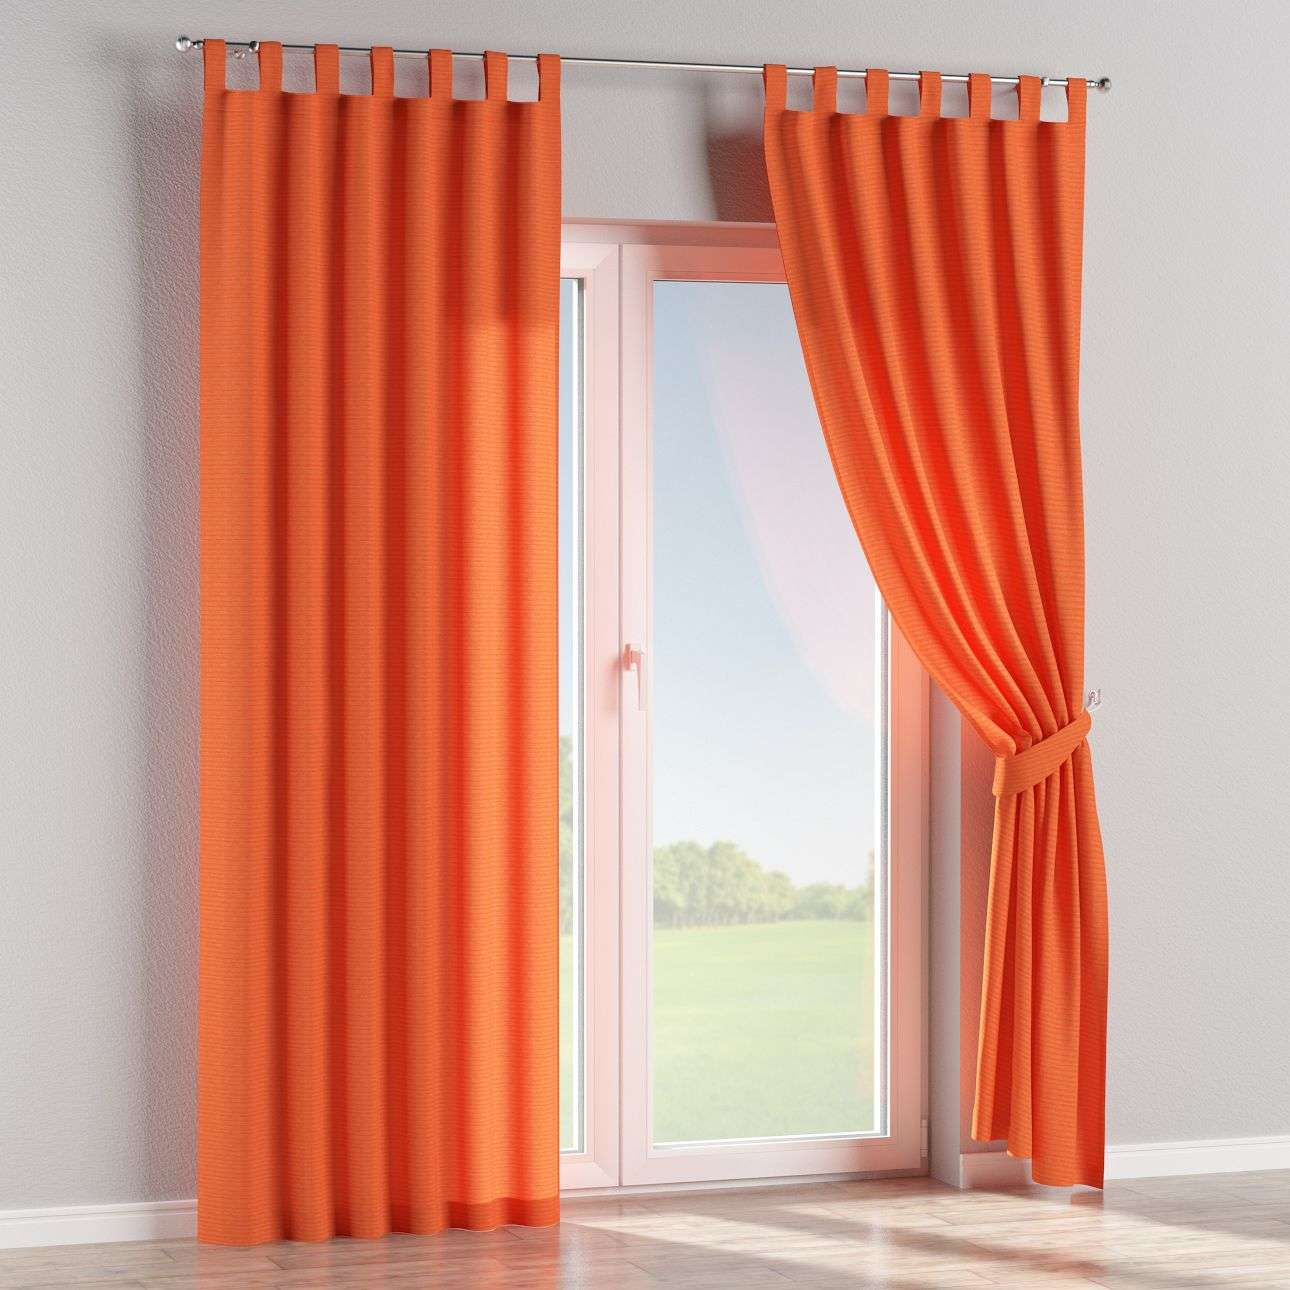 Tab top curtains 130 × 260 cm (51 × 102 inch) in collection Jupiter, fabric: 127-35